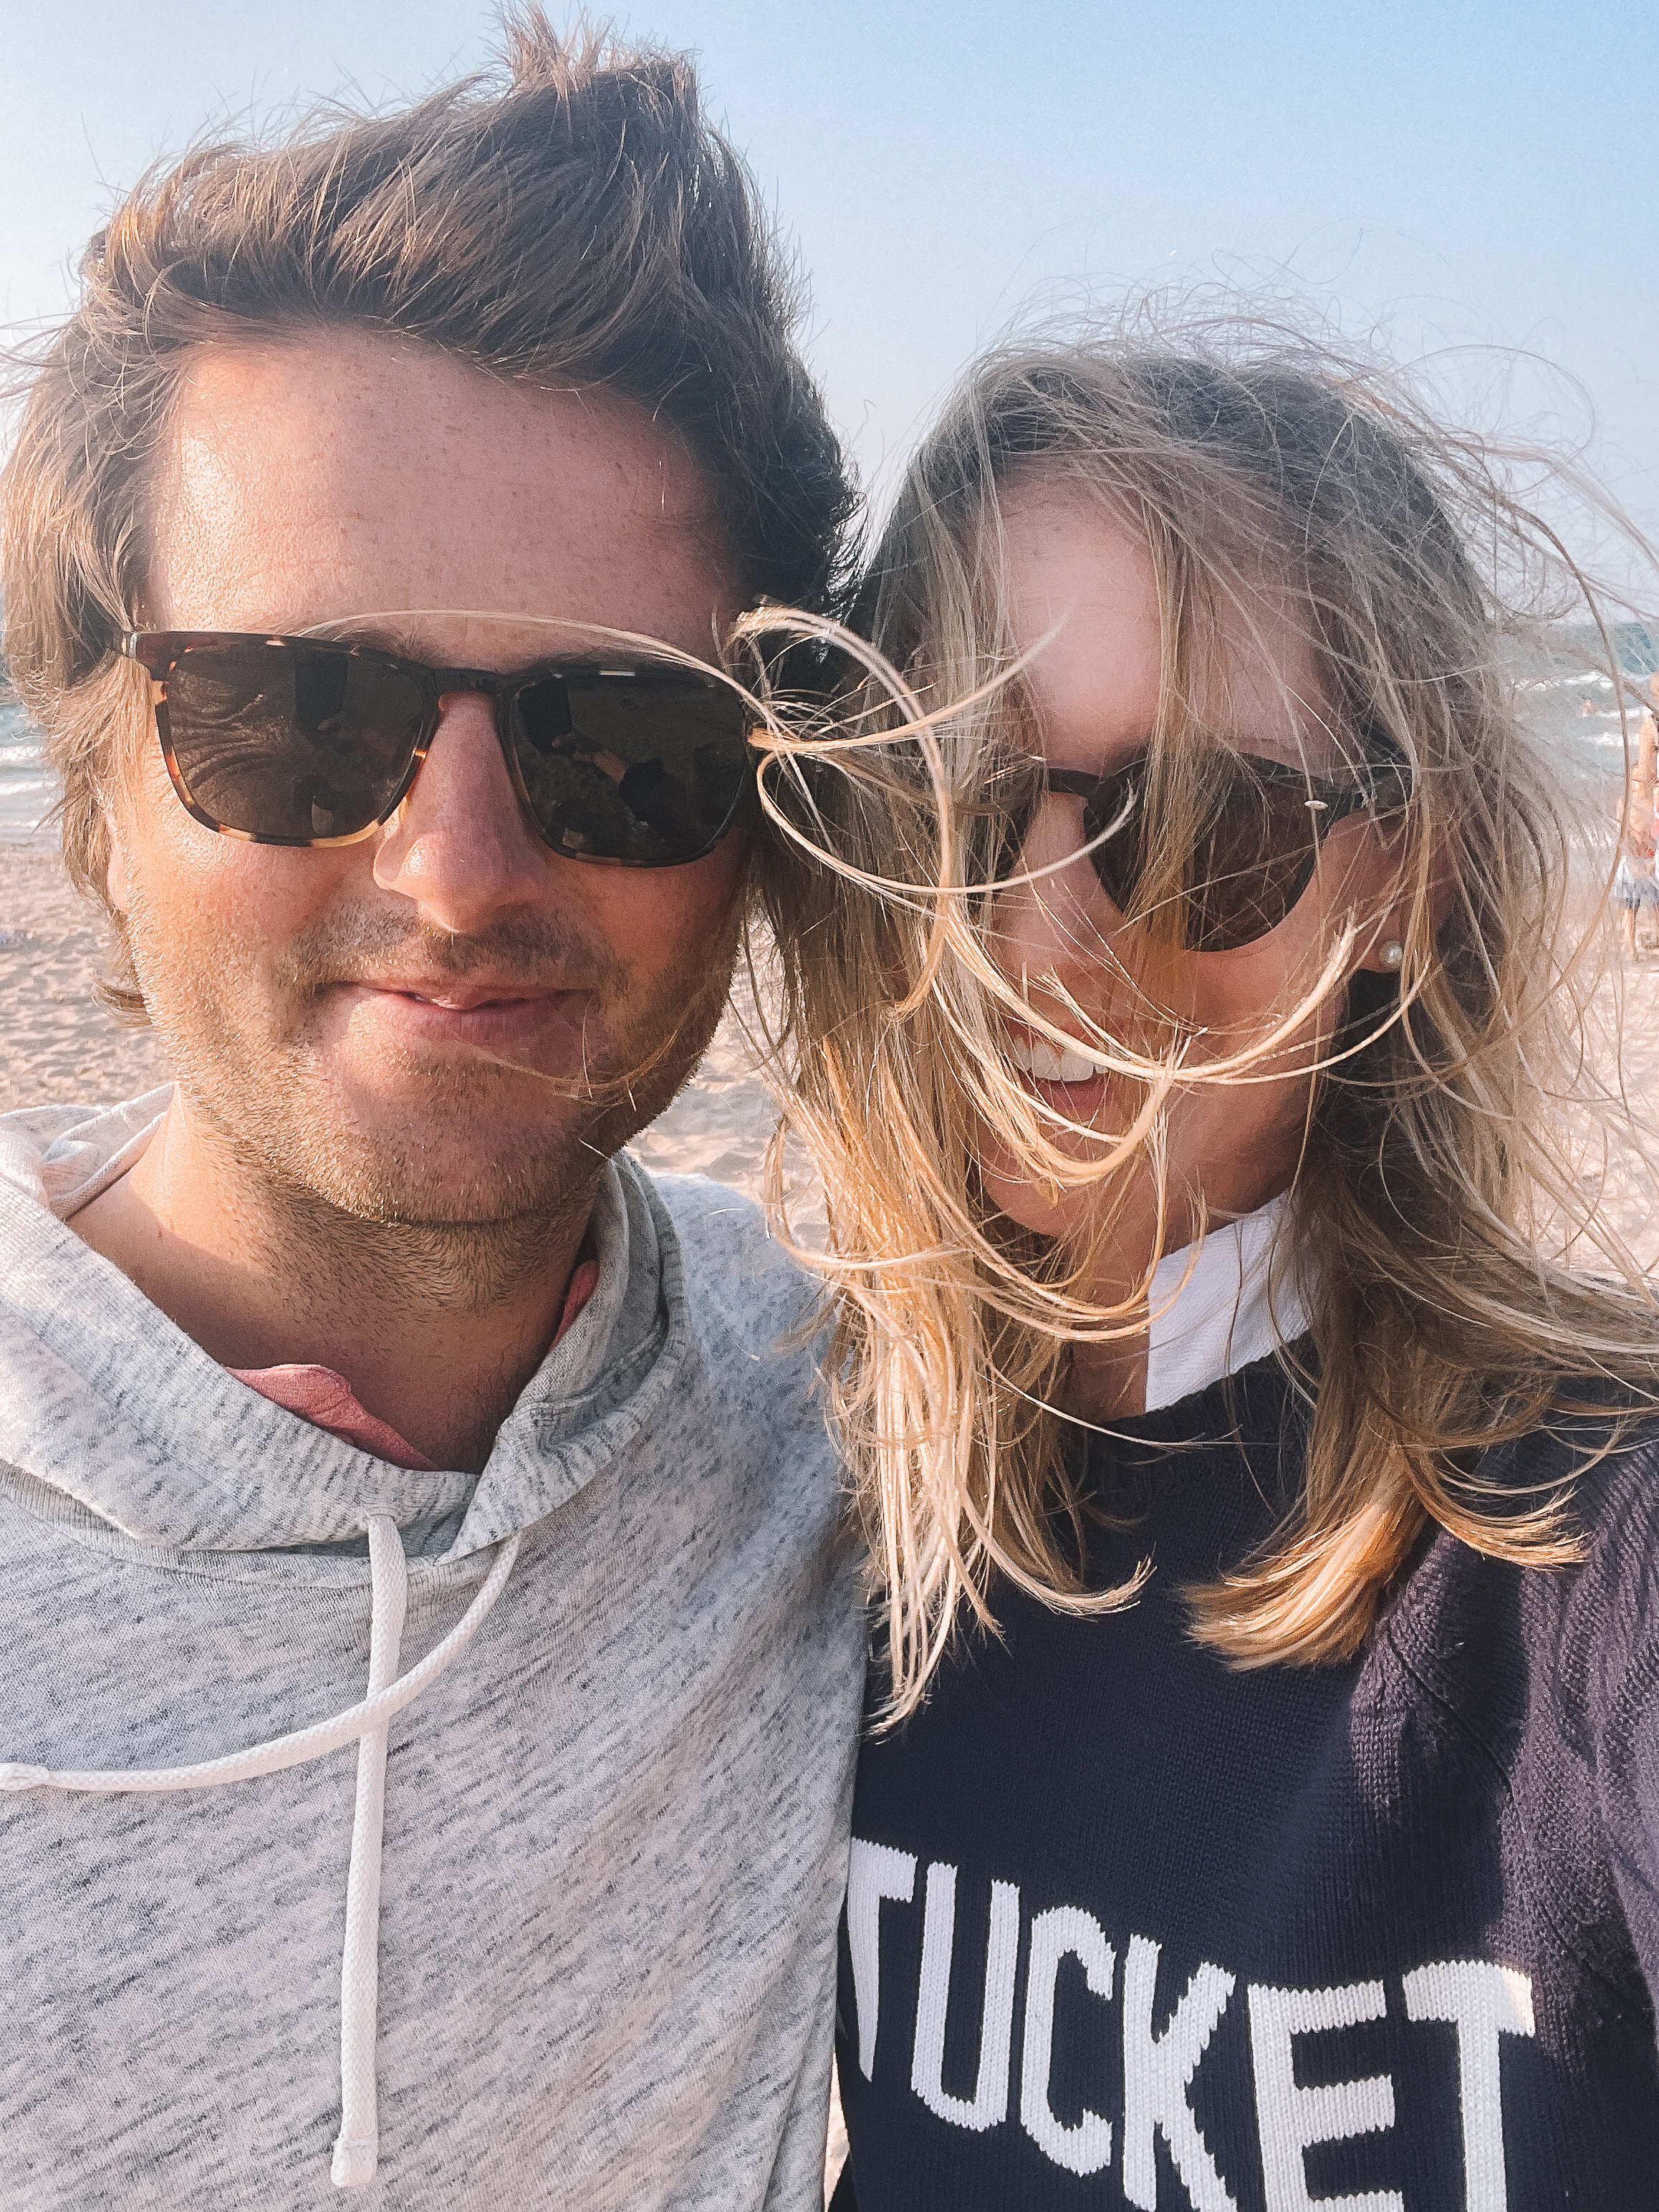 Mitch and Kelly at the beach